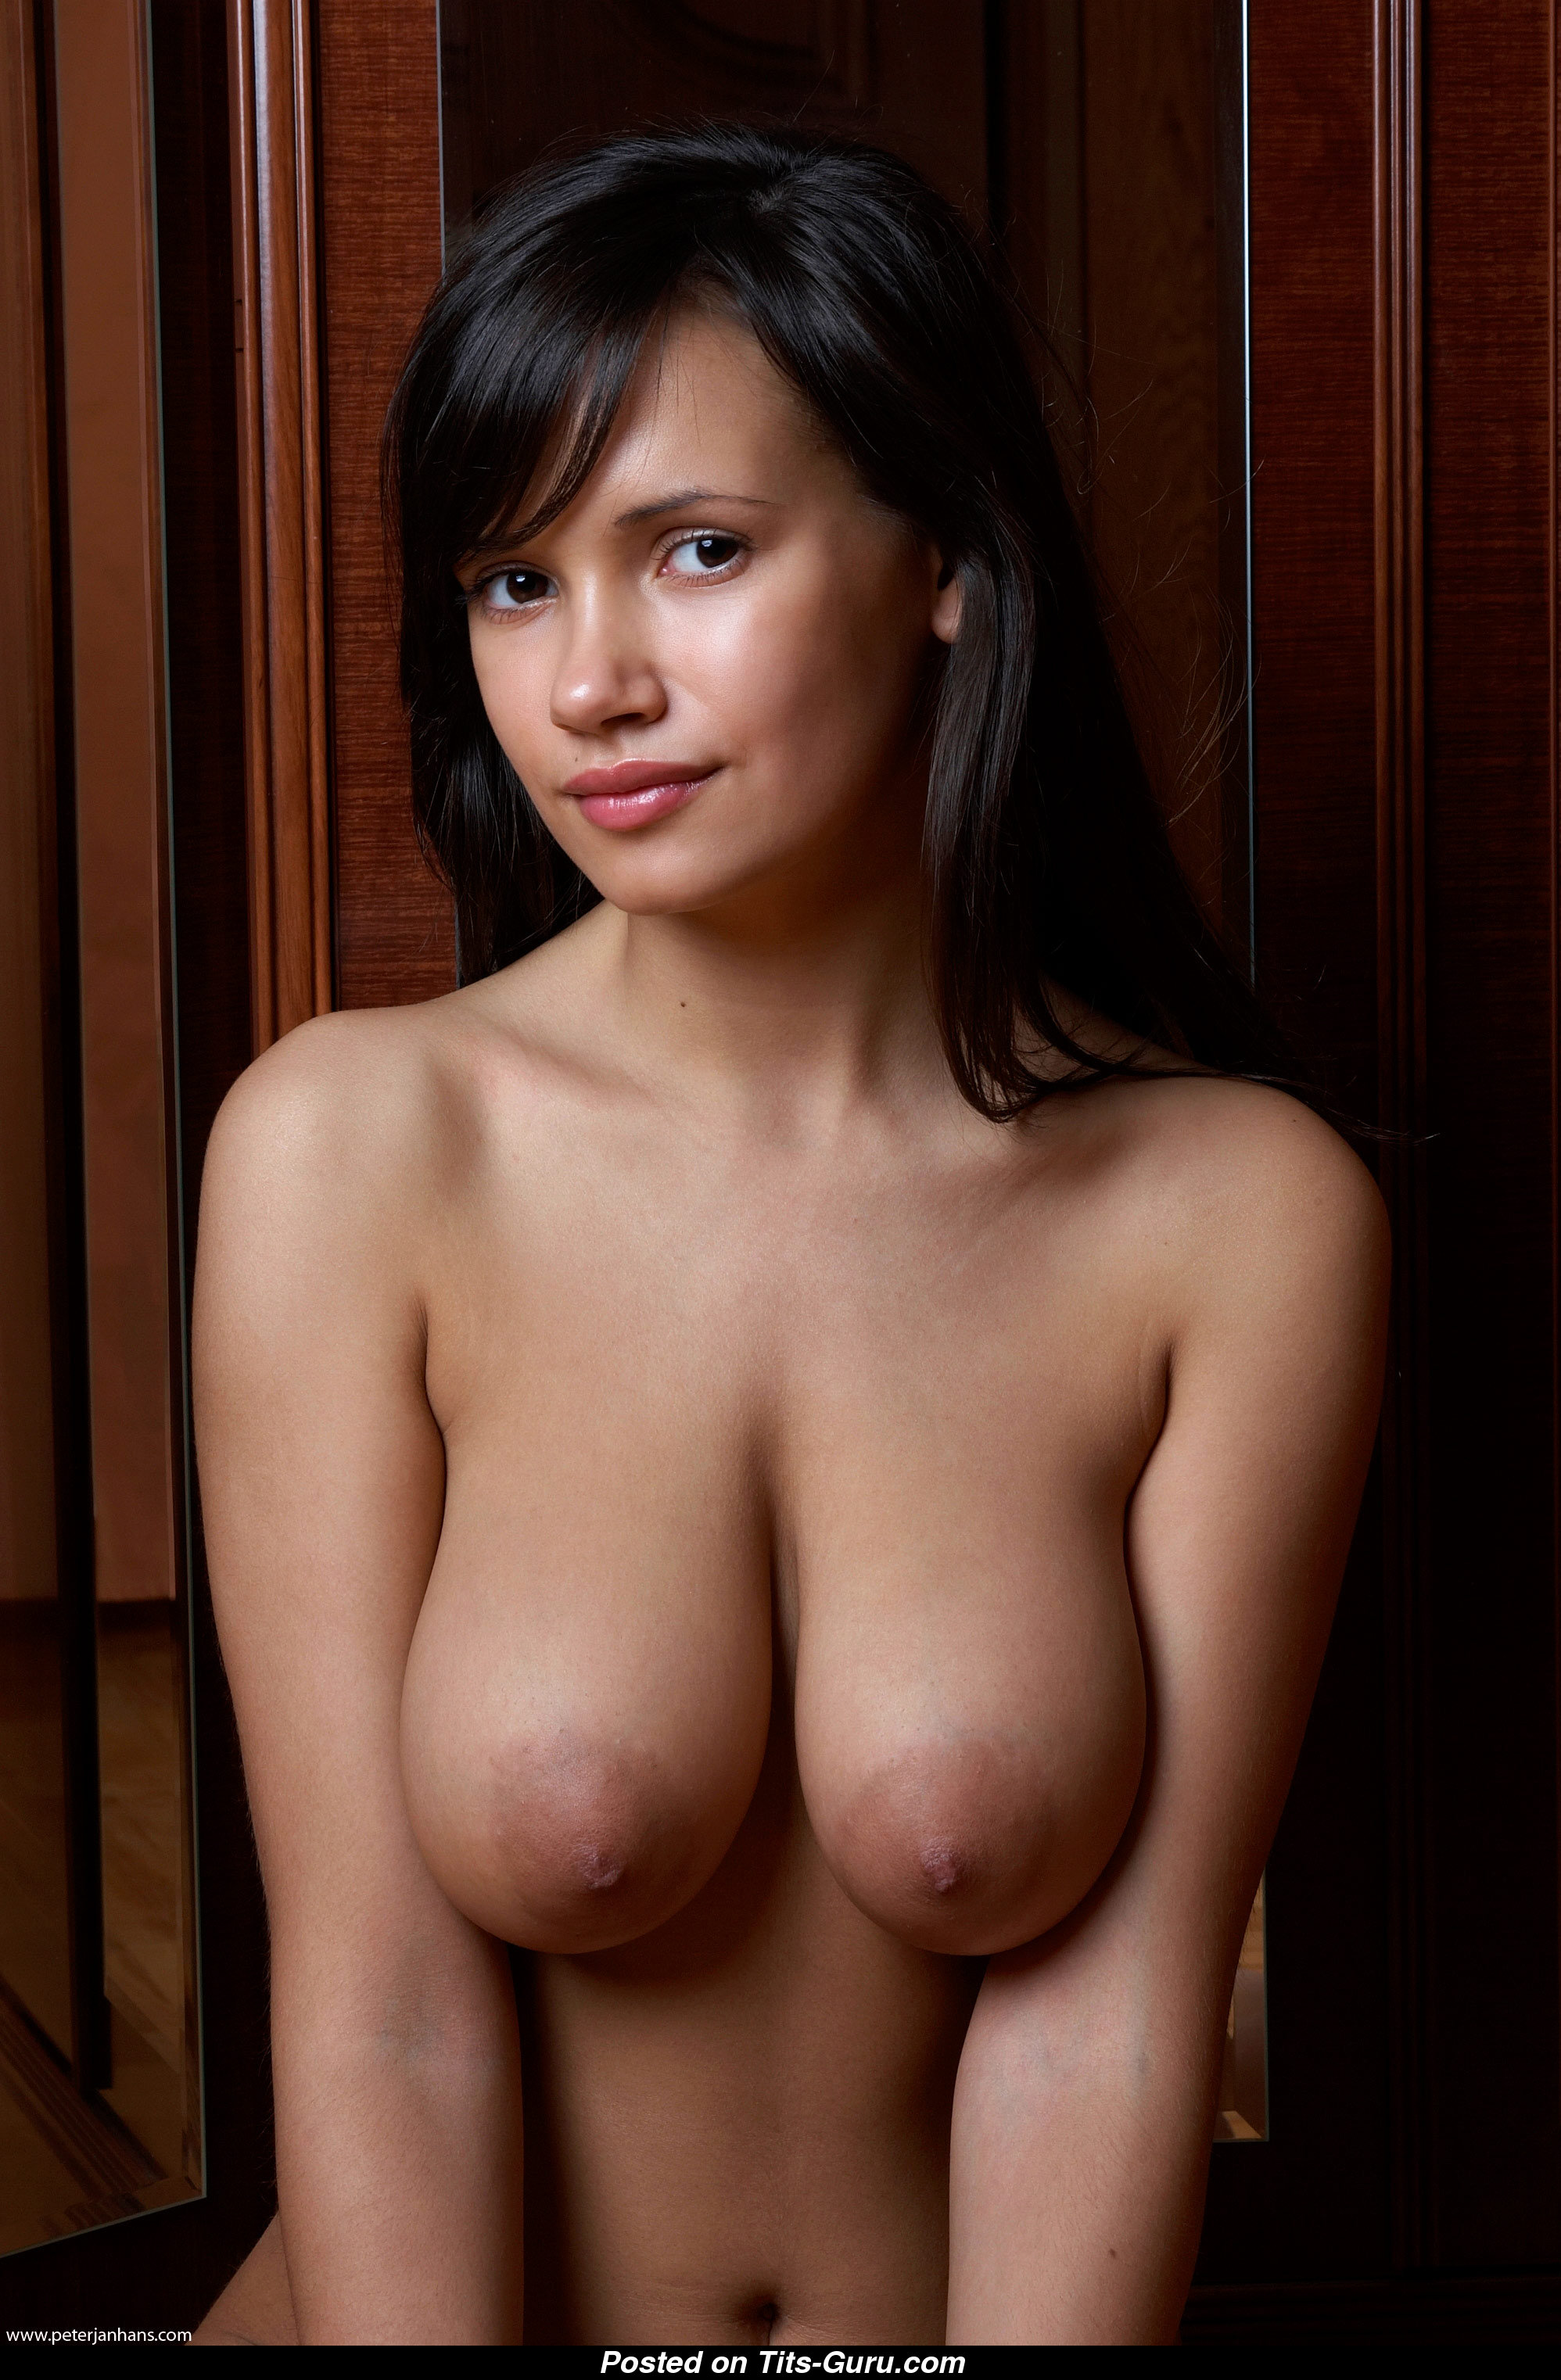 Alona - Woman With Defenseless Real Medium Sized Chest 18 Pic 1302 -3141